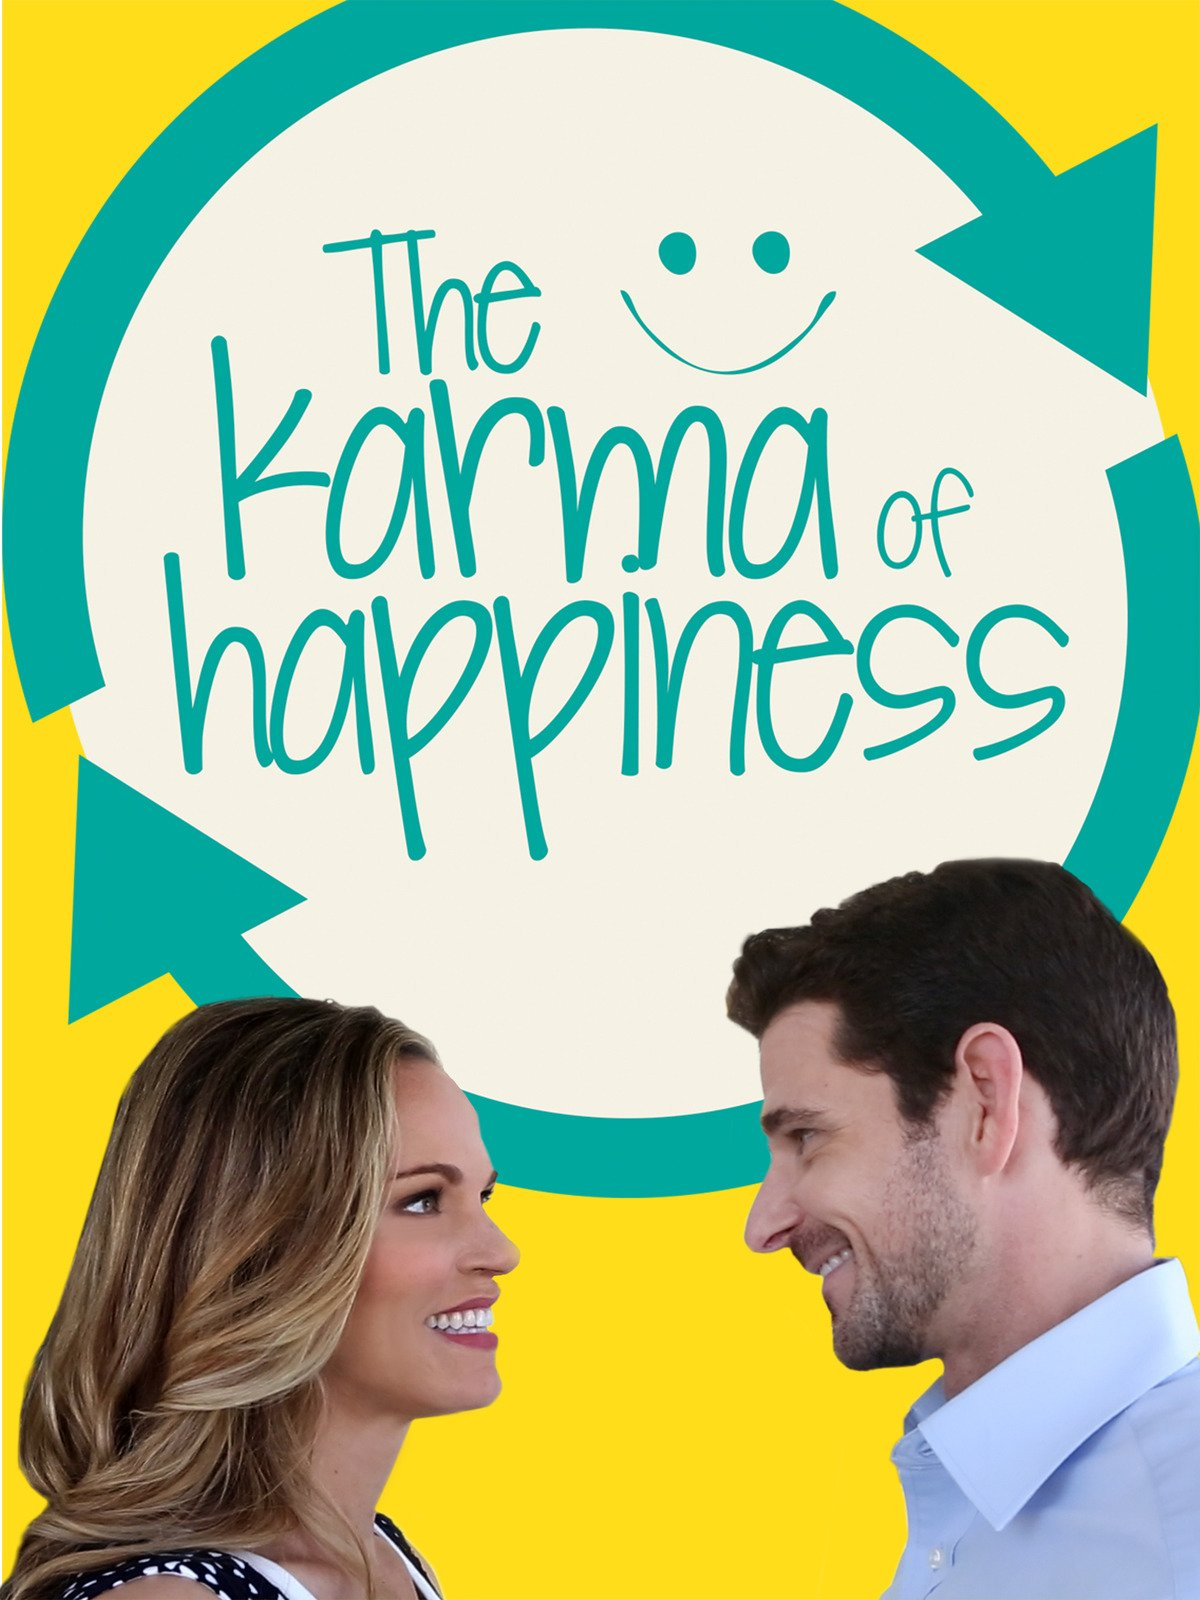 The Karma of Happiness